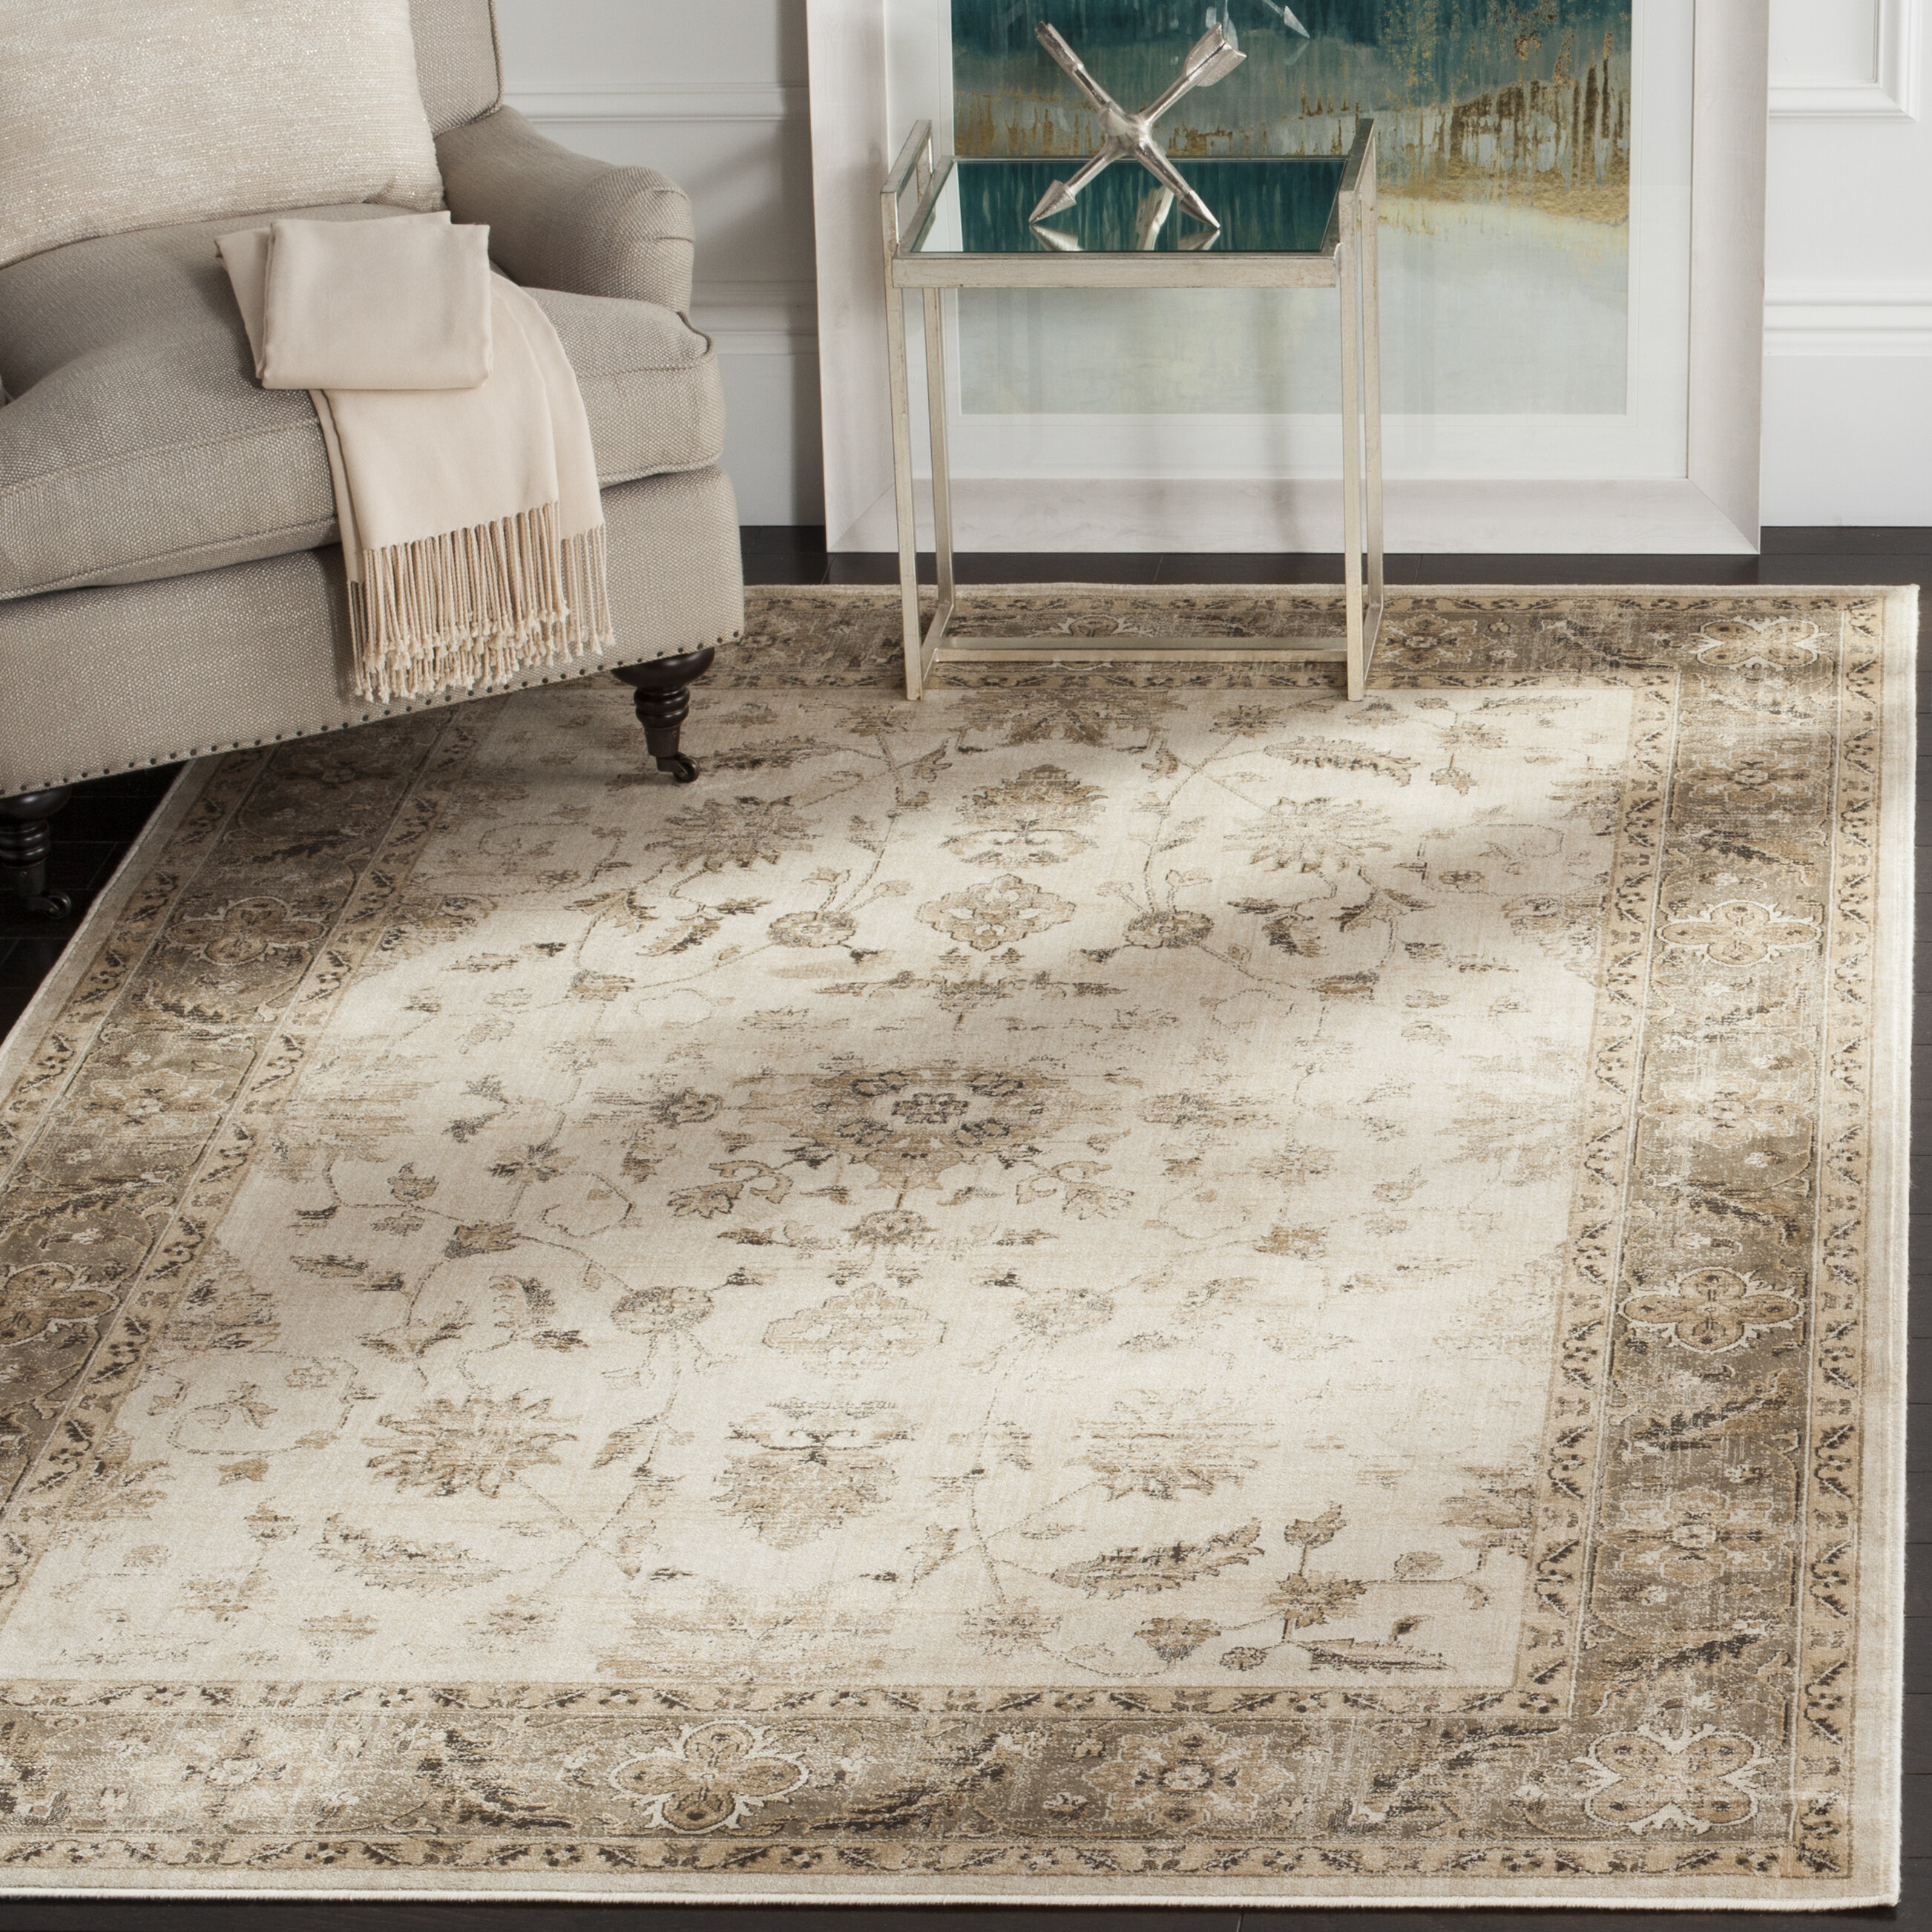 Tuller Stone Mouse Persian Inspired Ivory Area Rug Reviews Joss Main